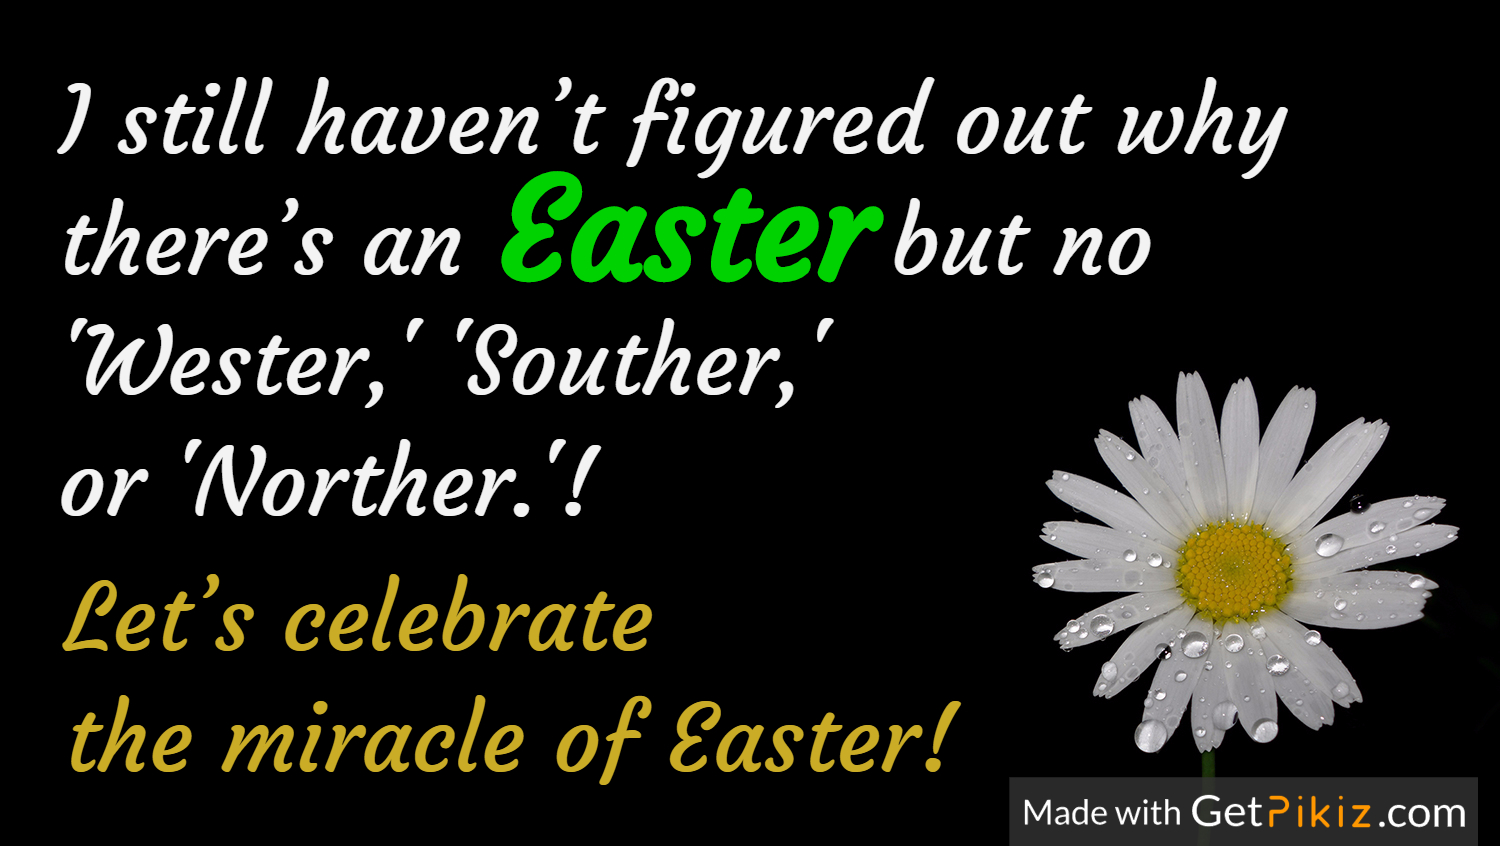 I still haven't figured out why  there's an               but no  'Wester,' 'Souther,' or 'Norther.'! Let's celebrate  the miracle of Easter! Easter